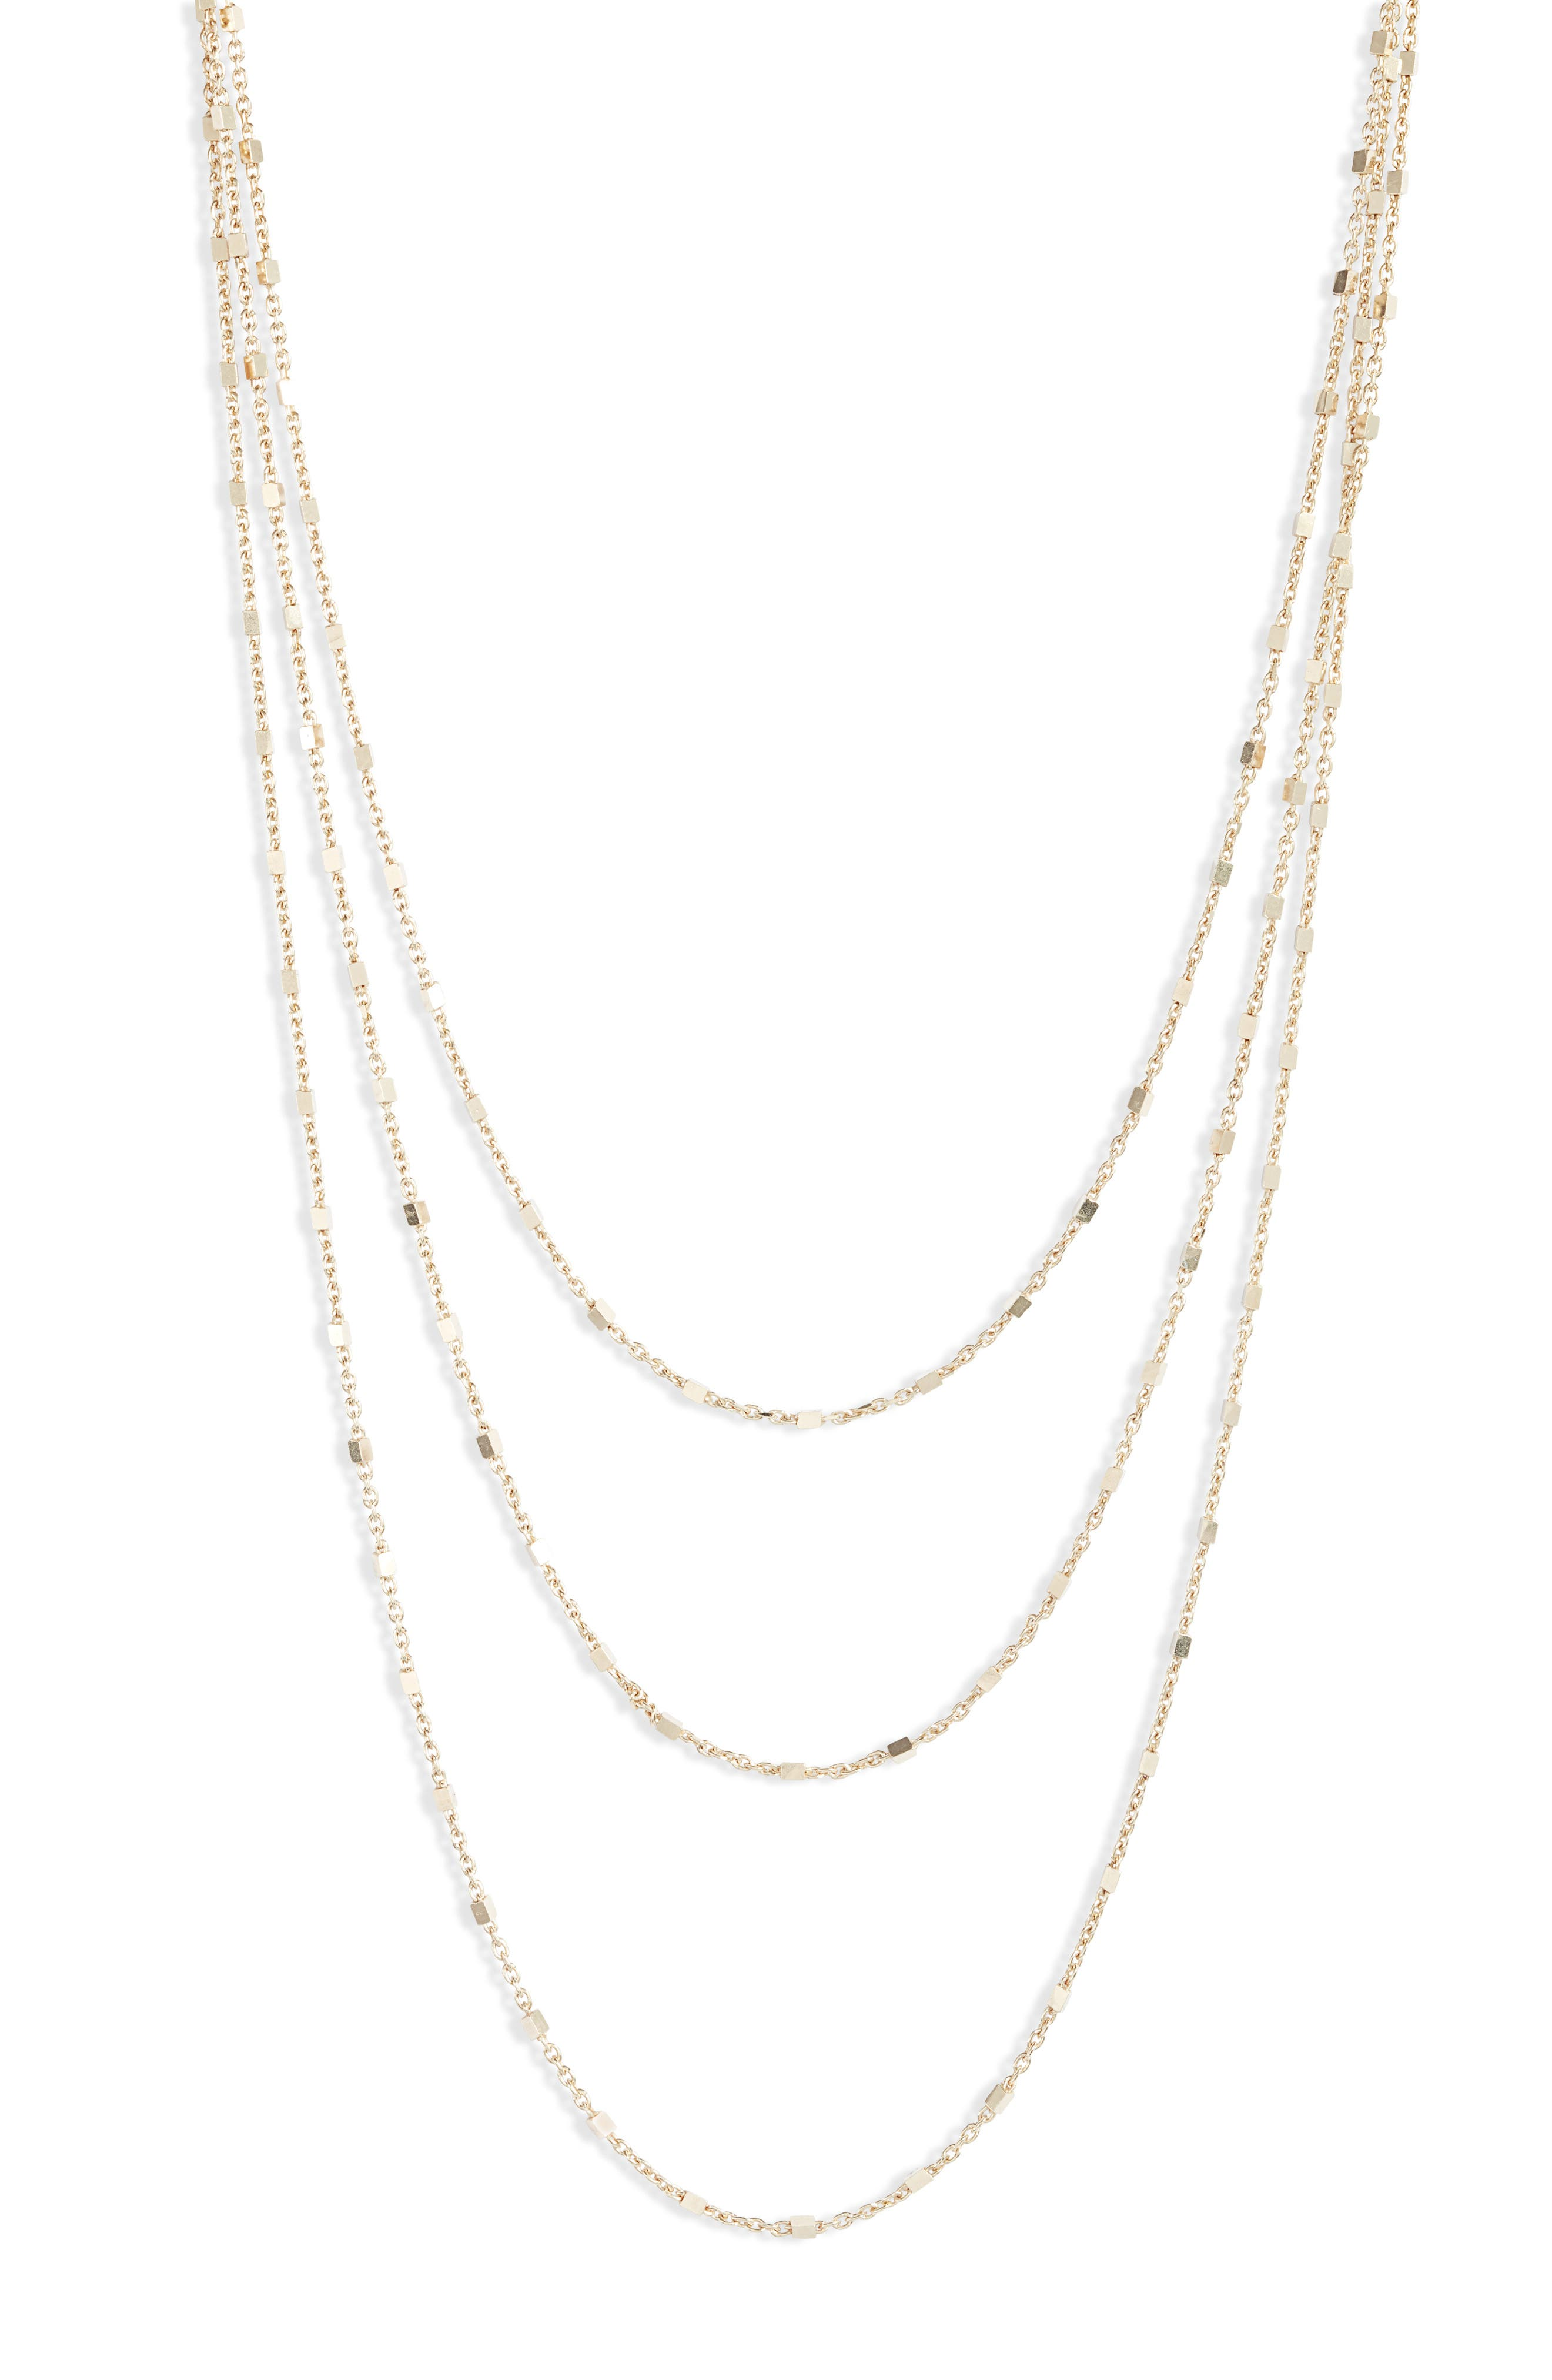 Marchel Layered Necklace